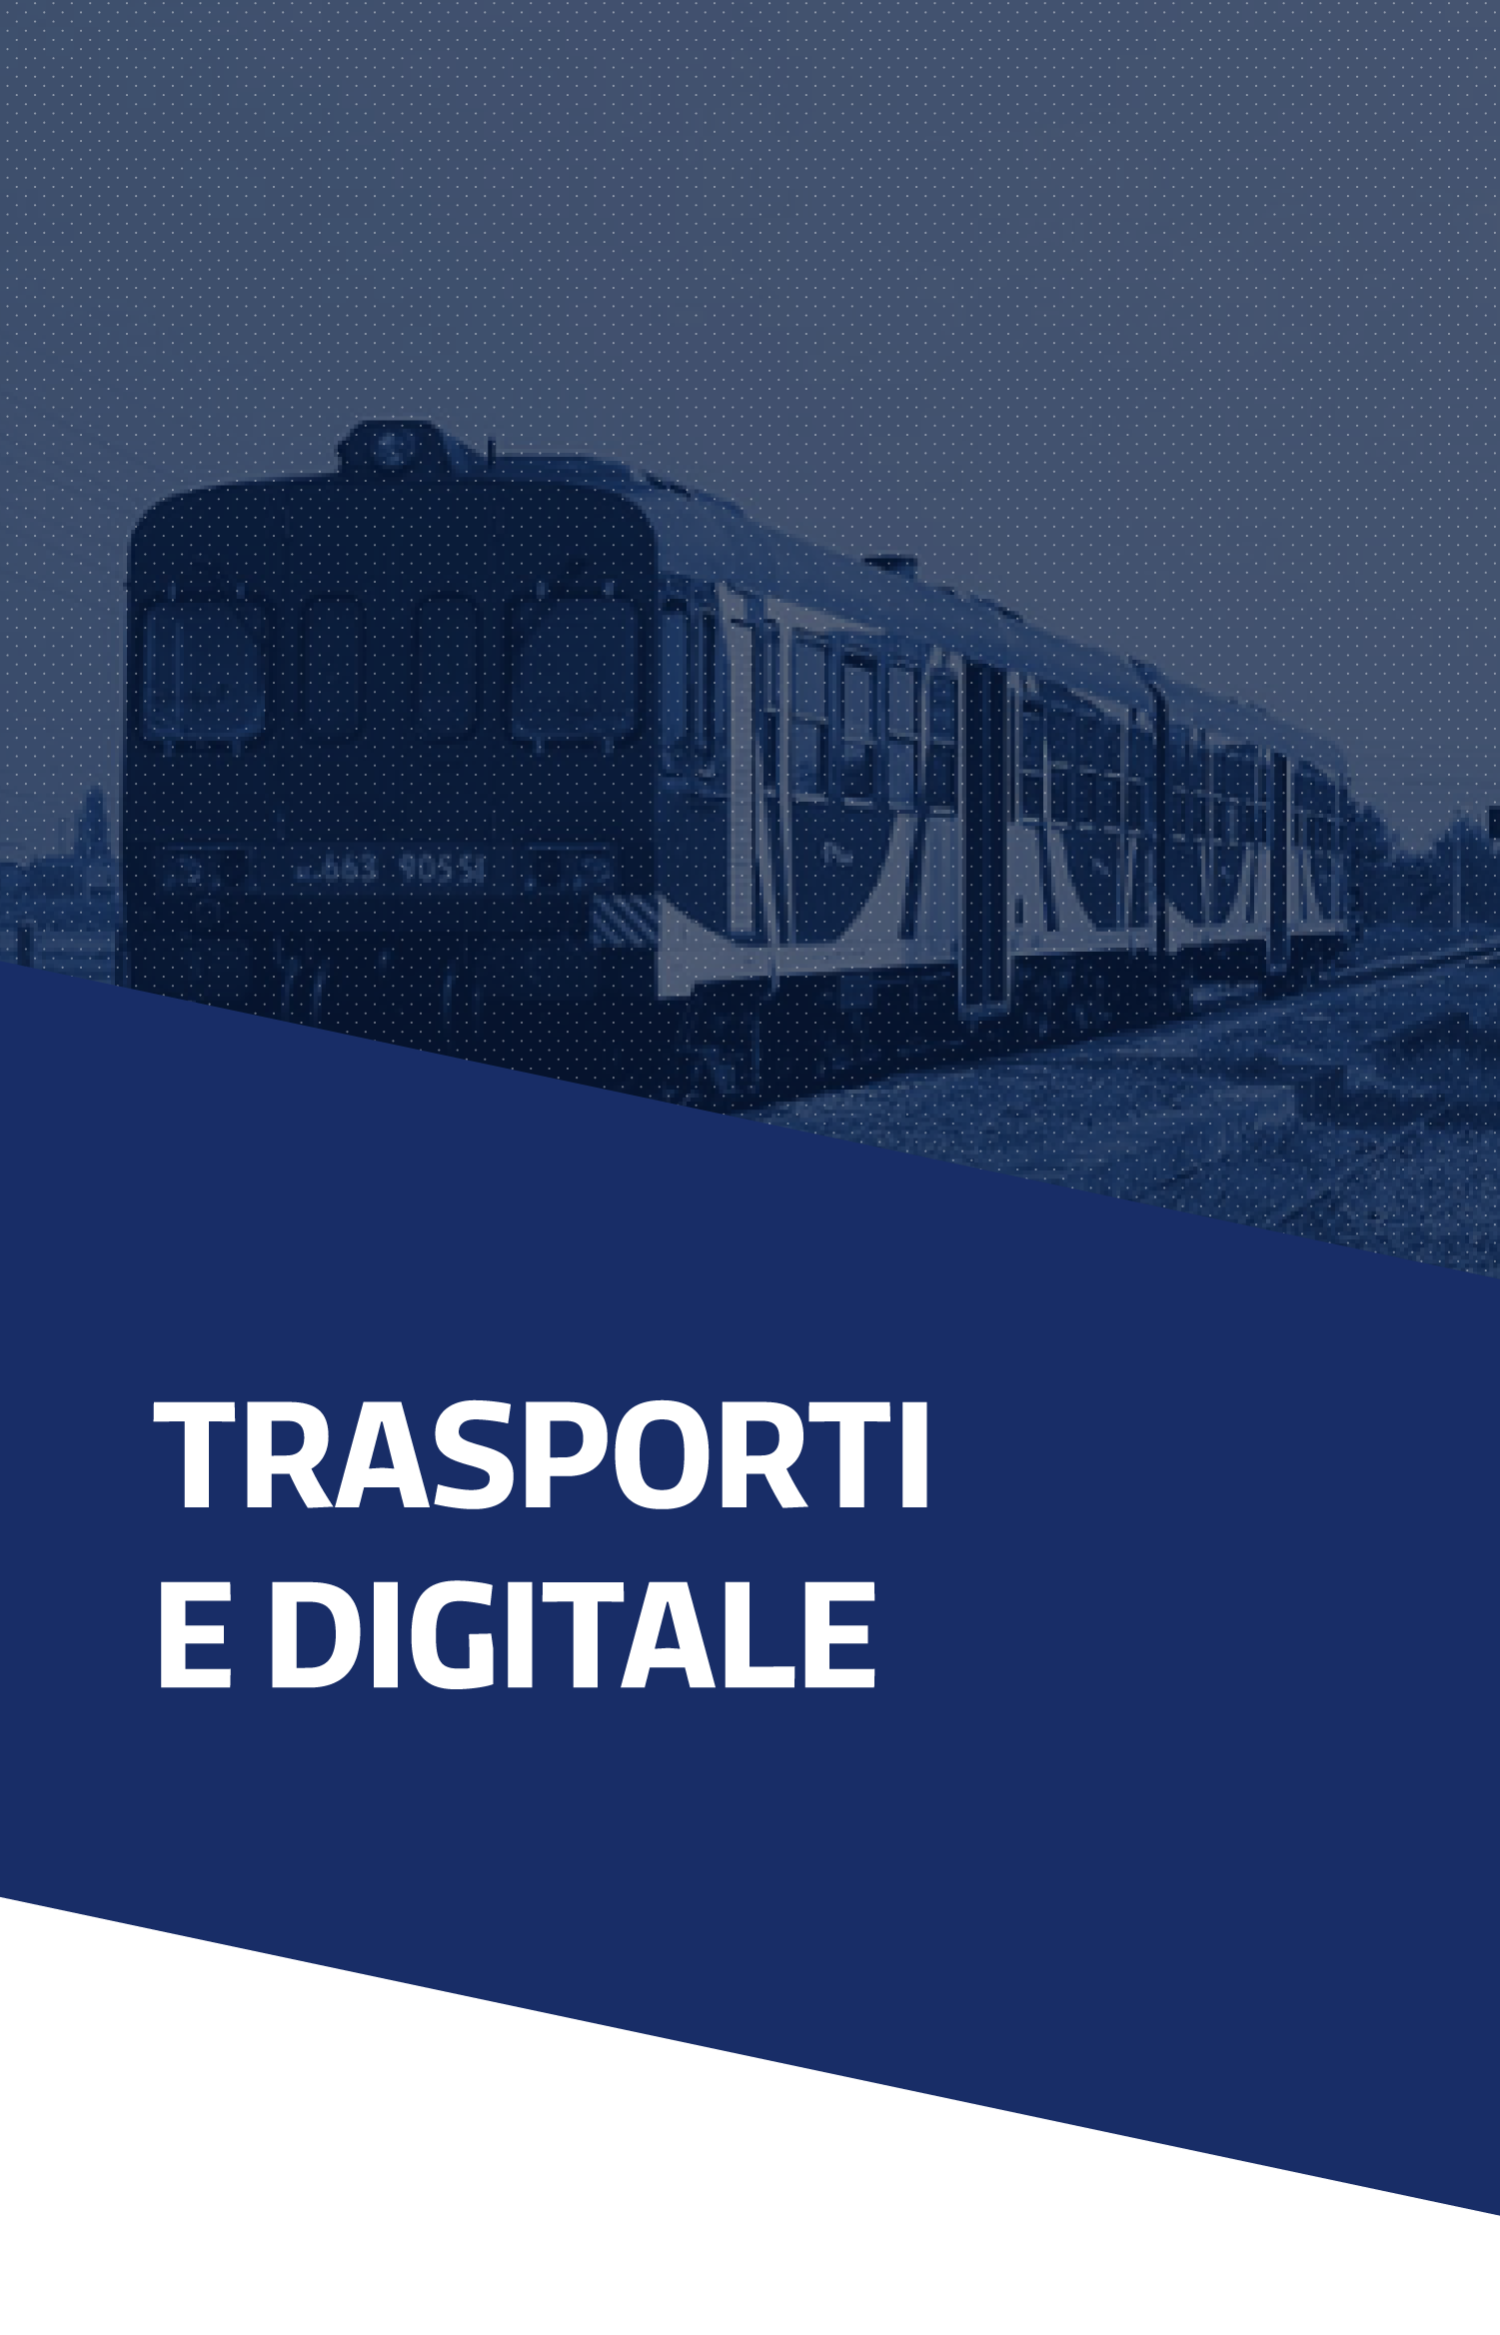 headertrasporti mobile